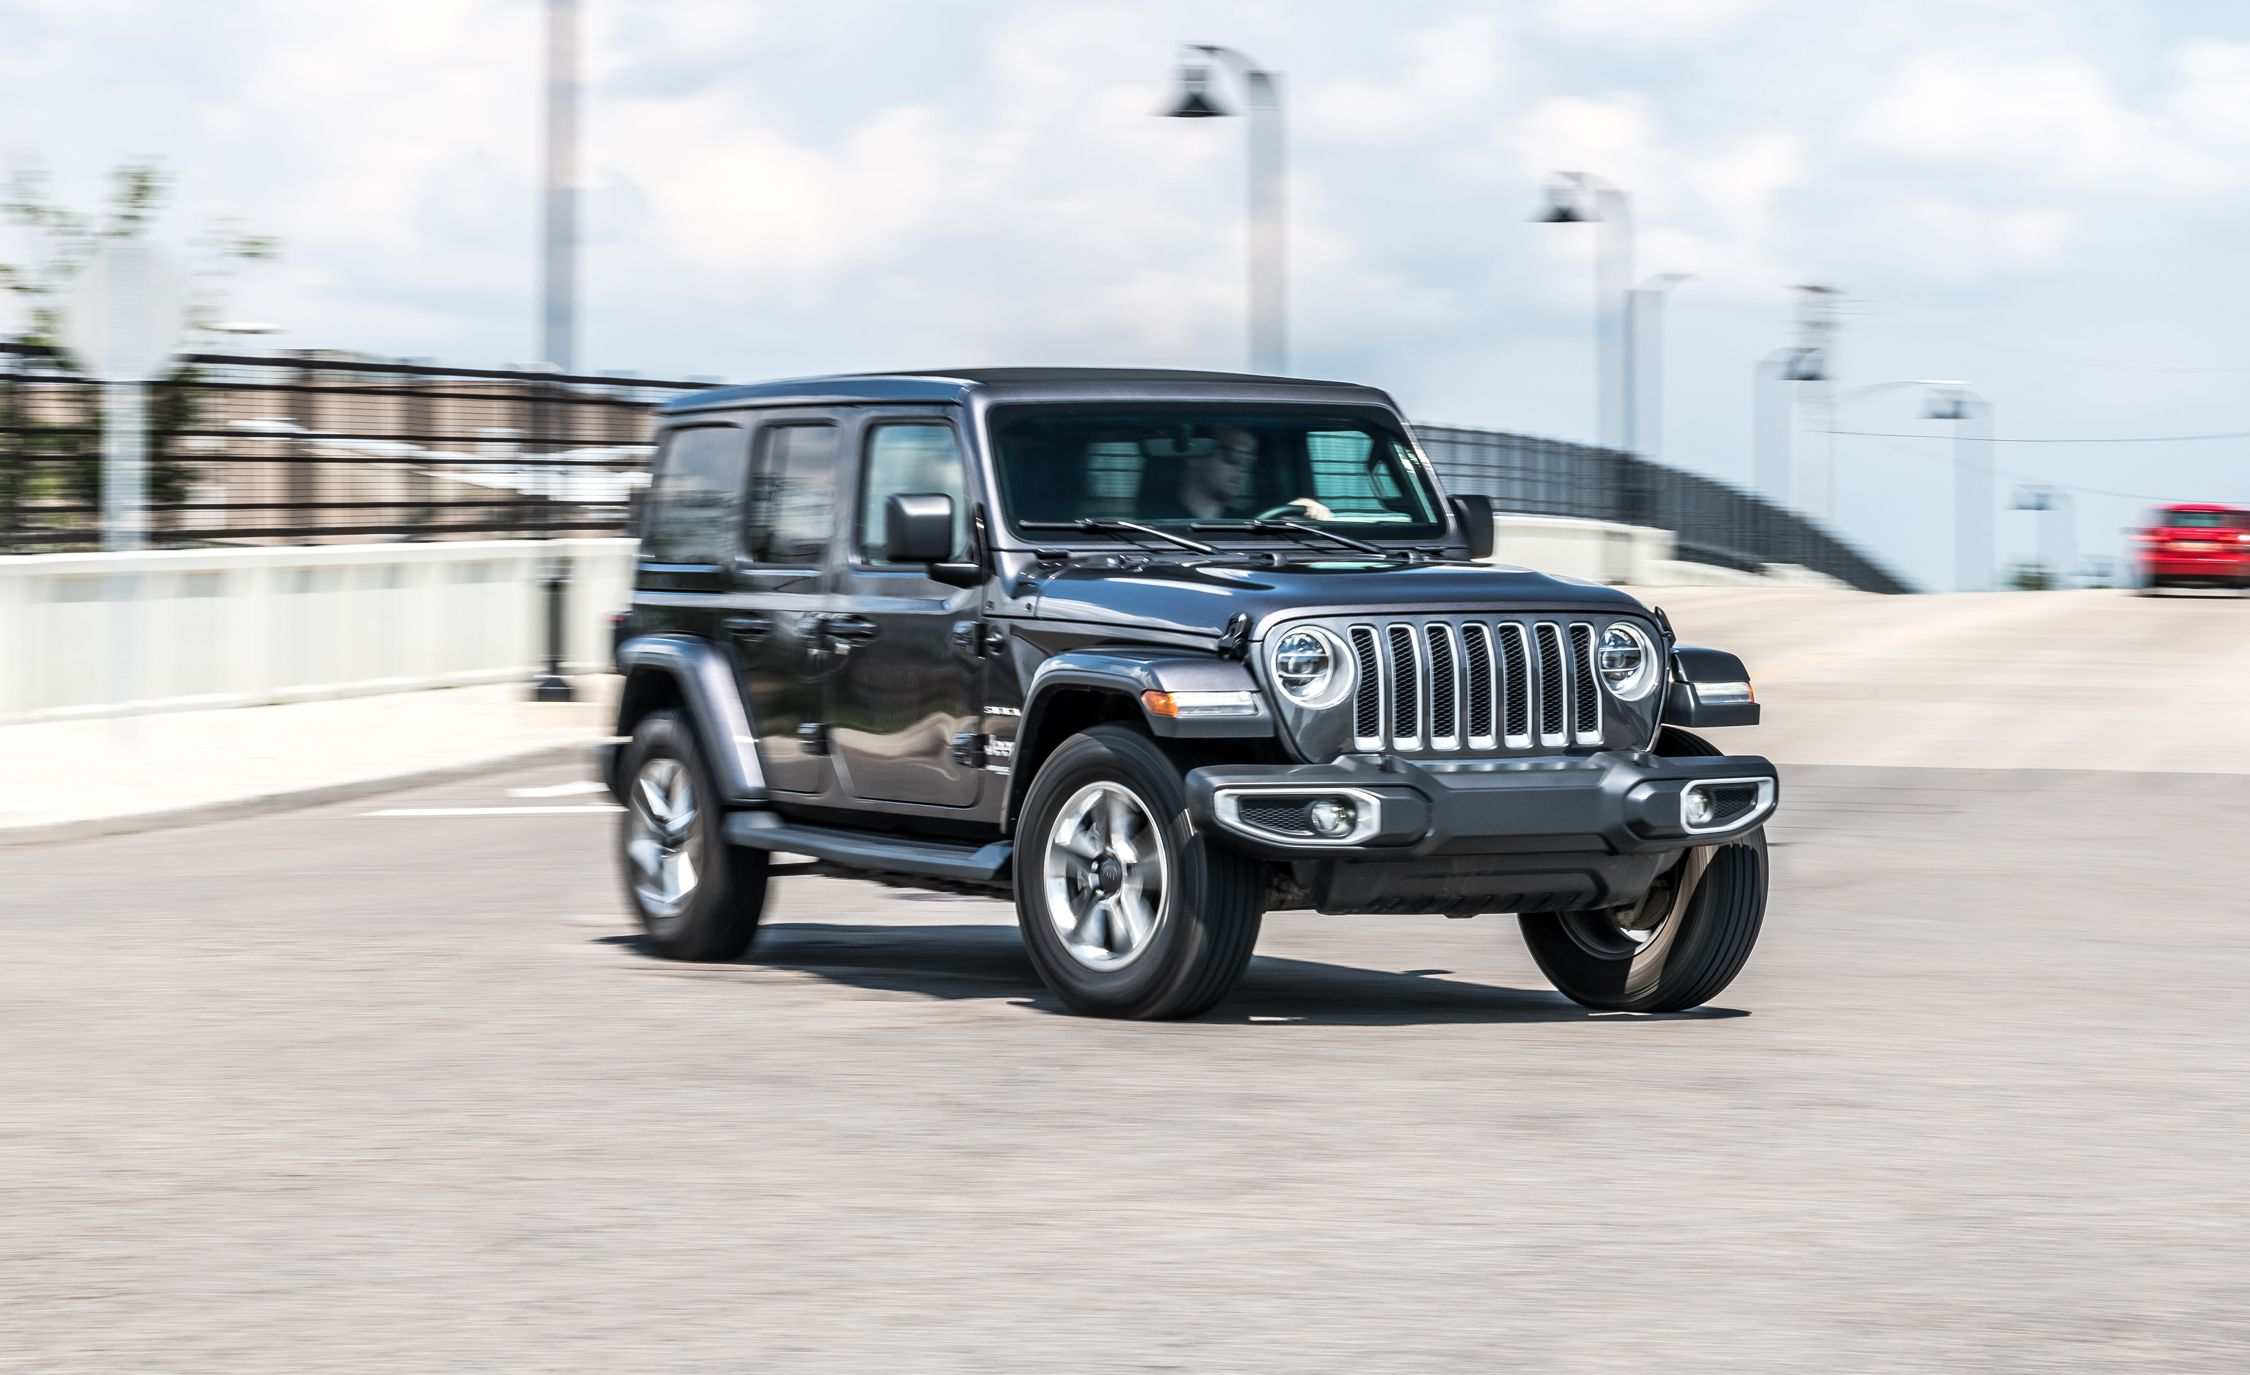 2018 Jeep Wrangler 2 0T: Four Cylinders with a Hybrid Assist